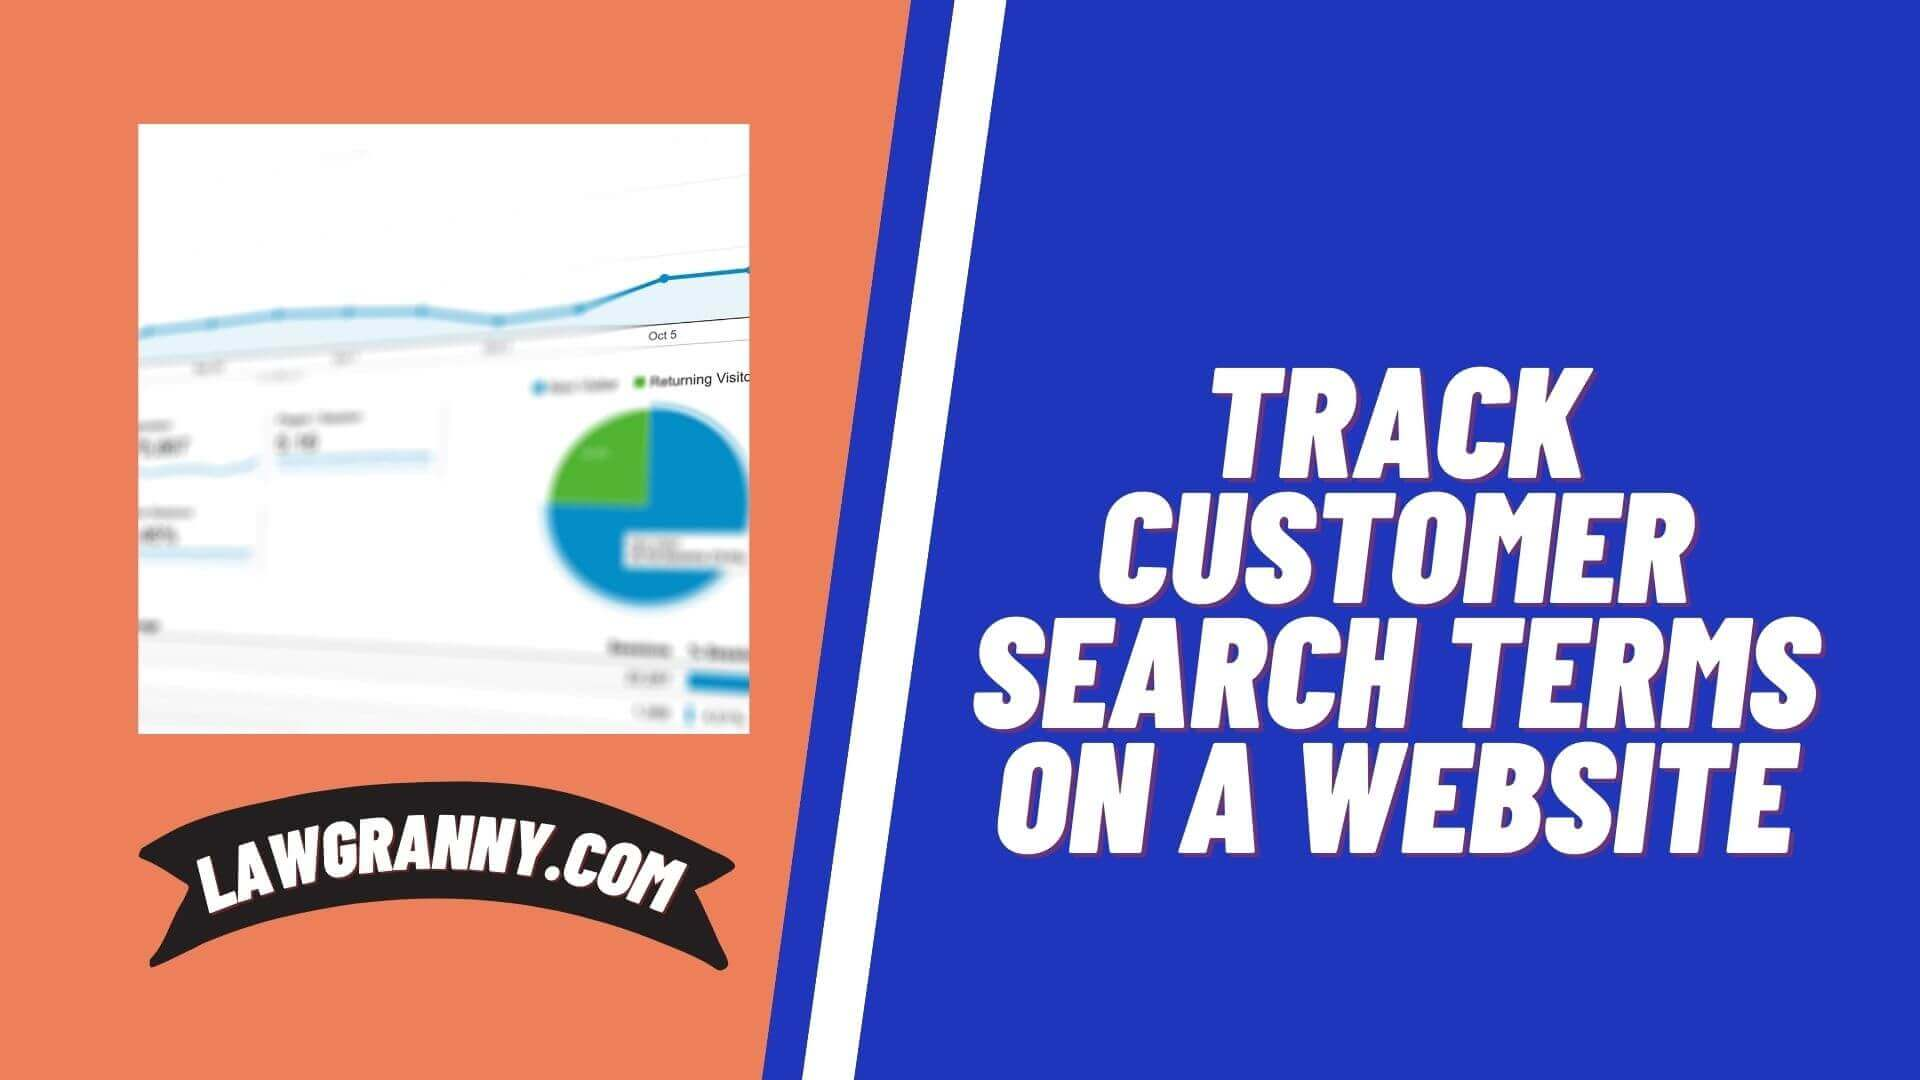 Track Customer Search Terms on a Website